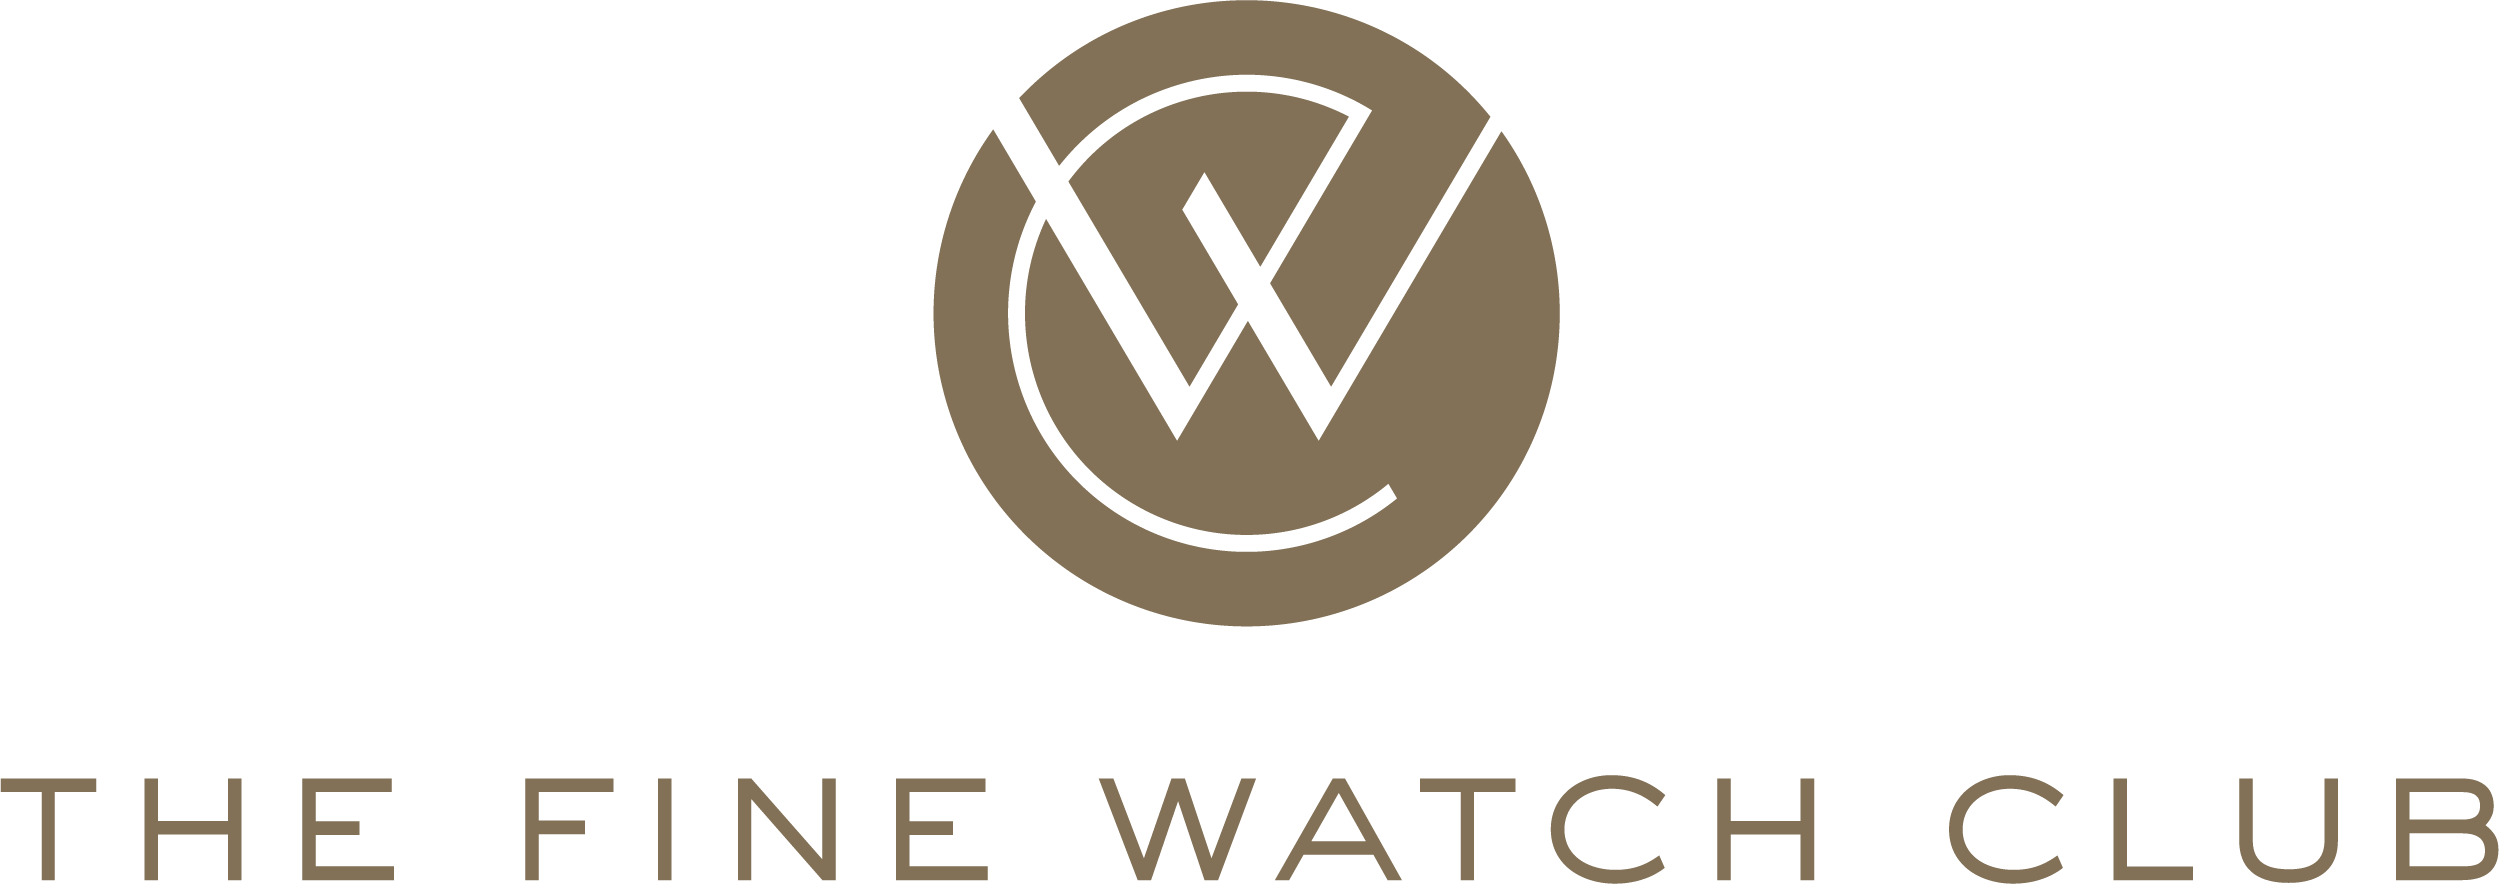 The Fine Watch Club